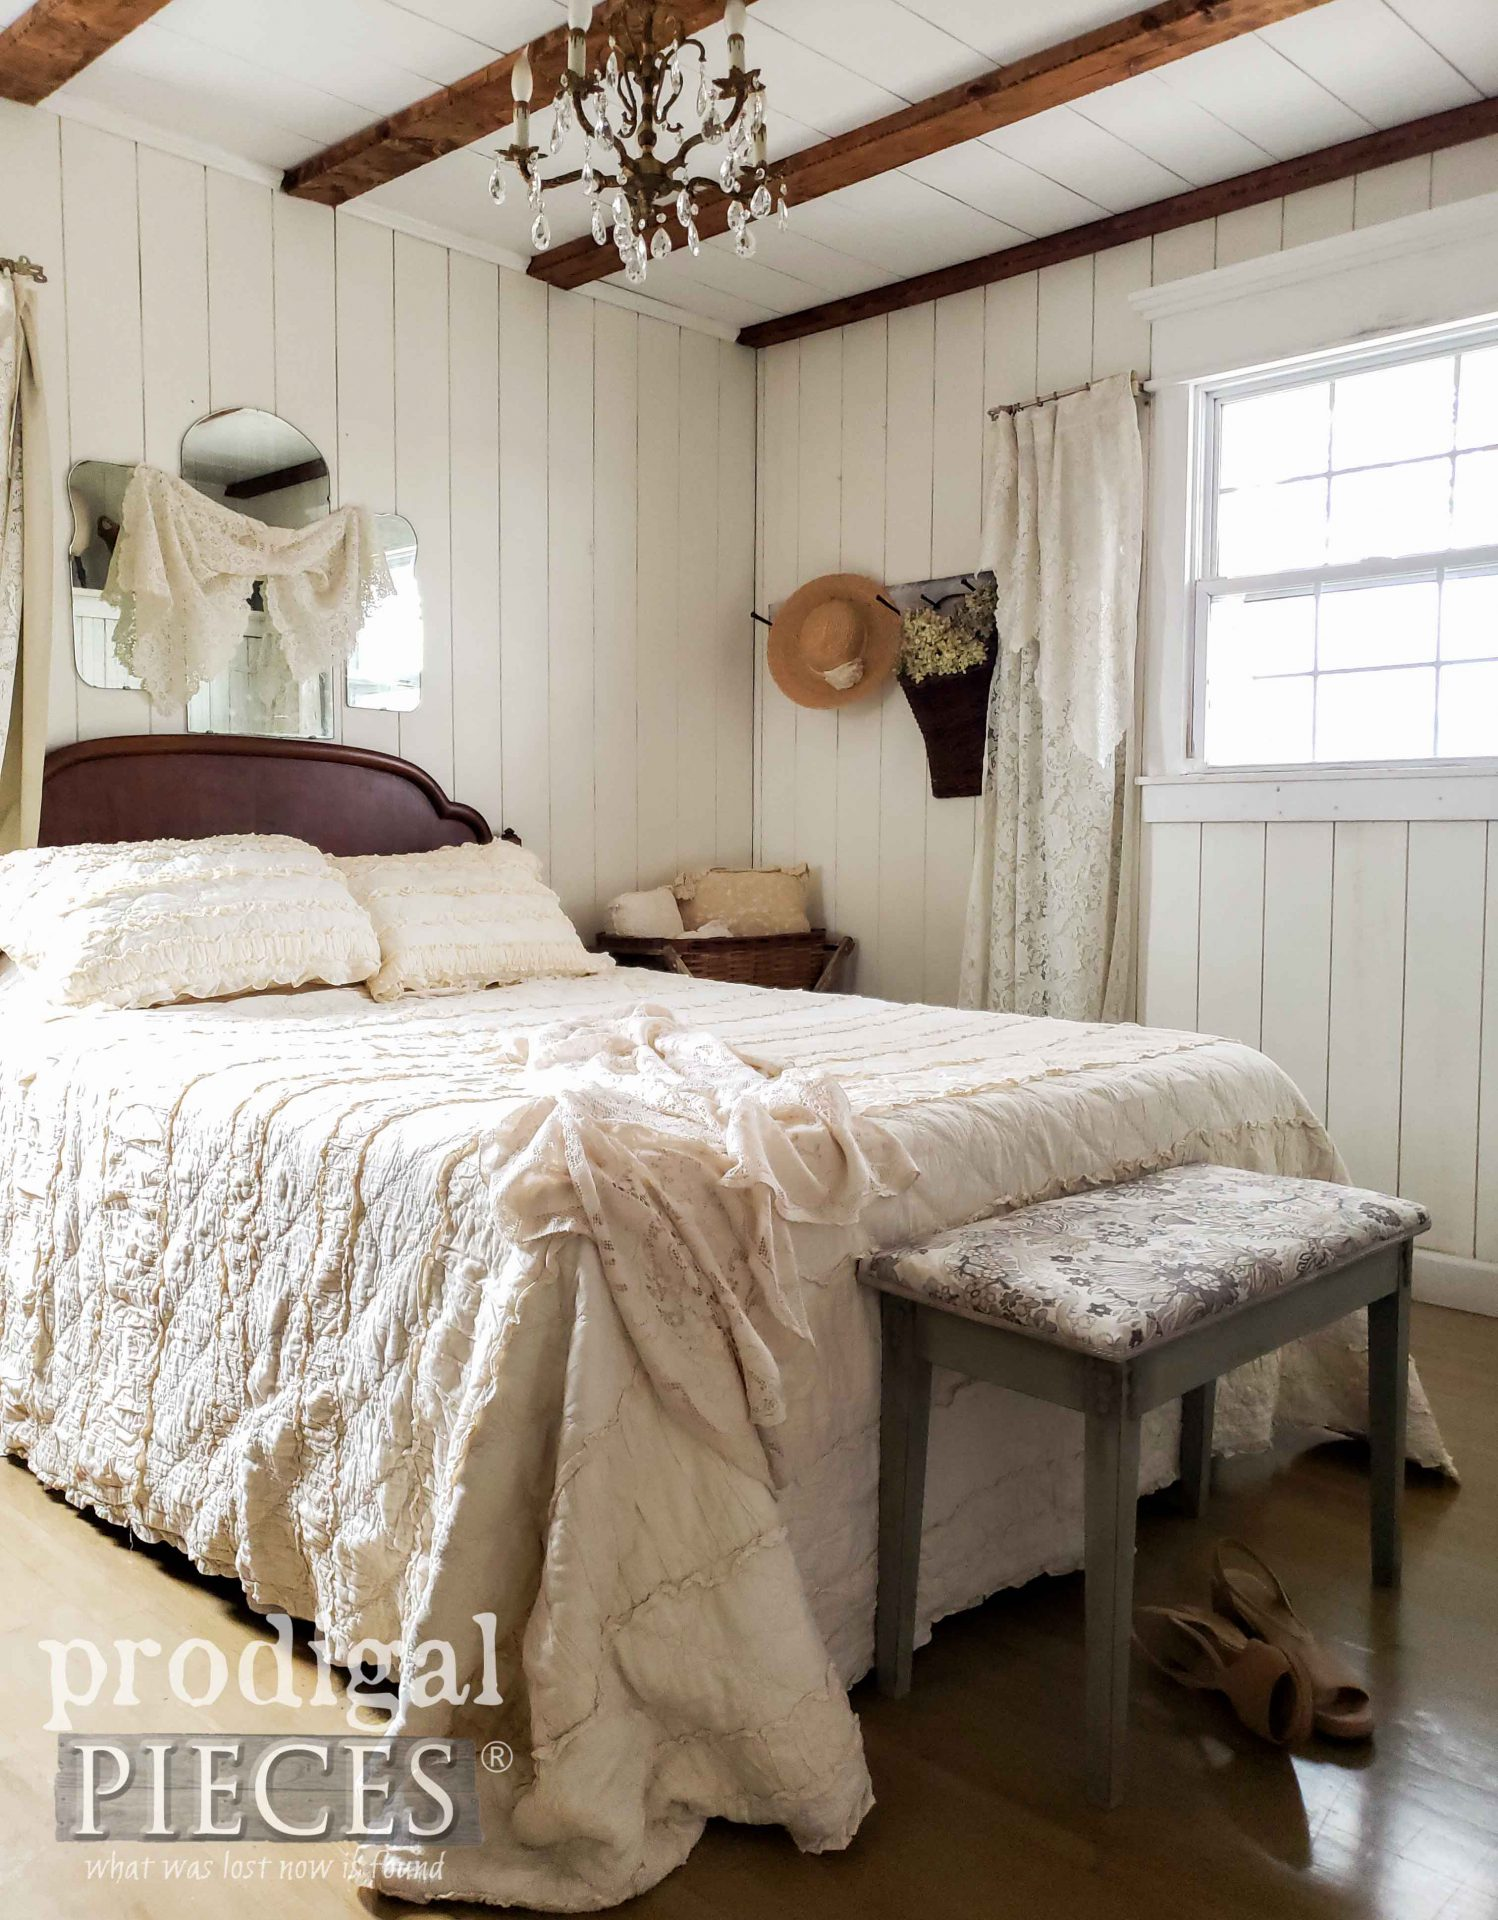 Vintage Style Bedroom Decor by Larissa of Prodigal Pieces | prodigalpieces.com #prodigalpieces #diy #home #bedroom #furniture #homedecor